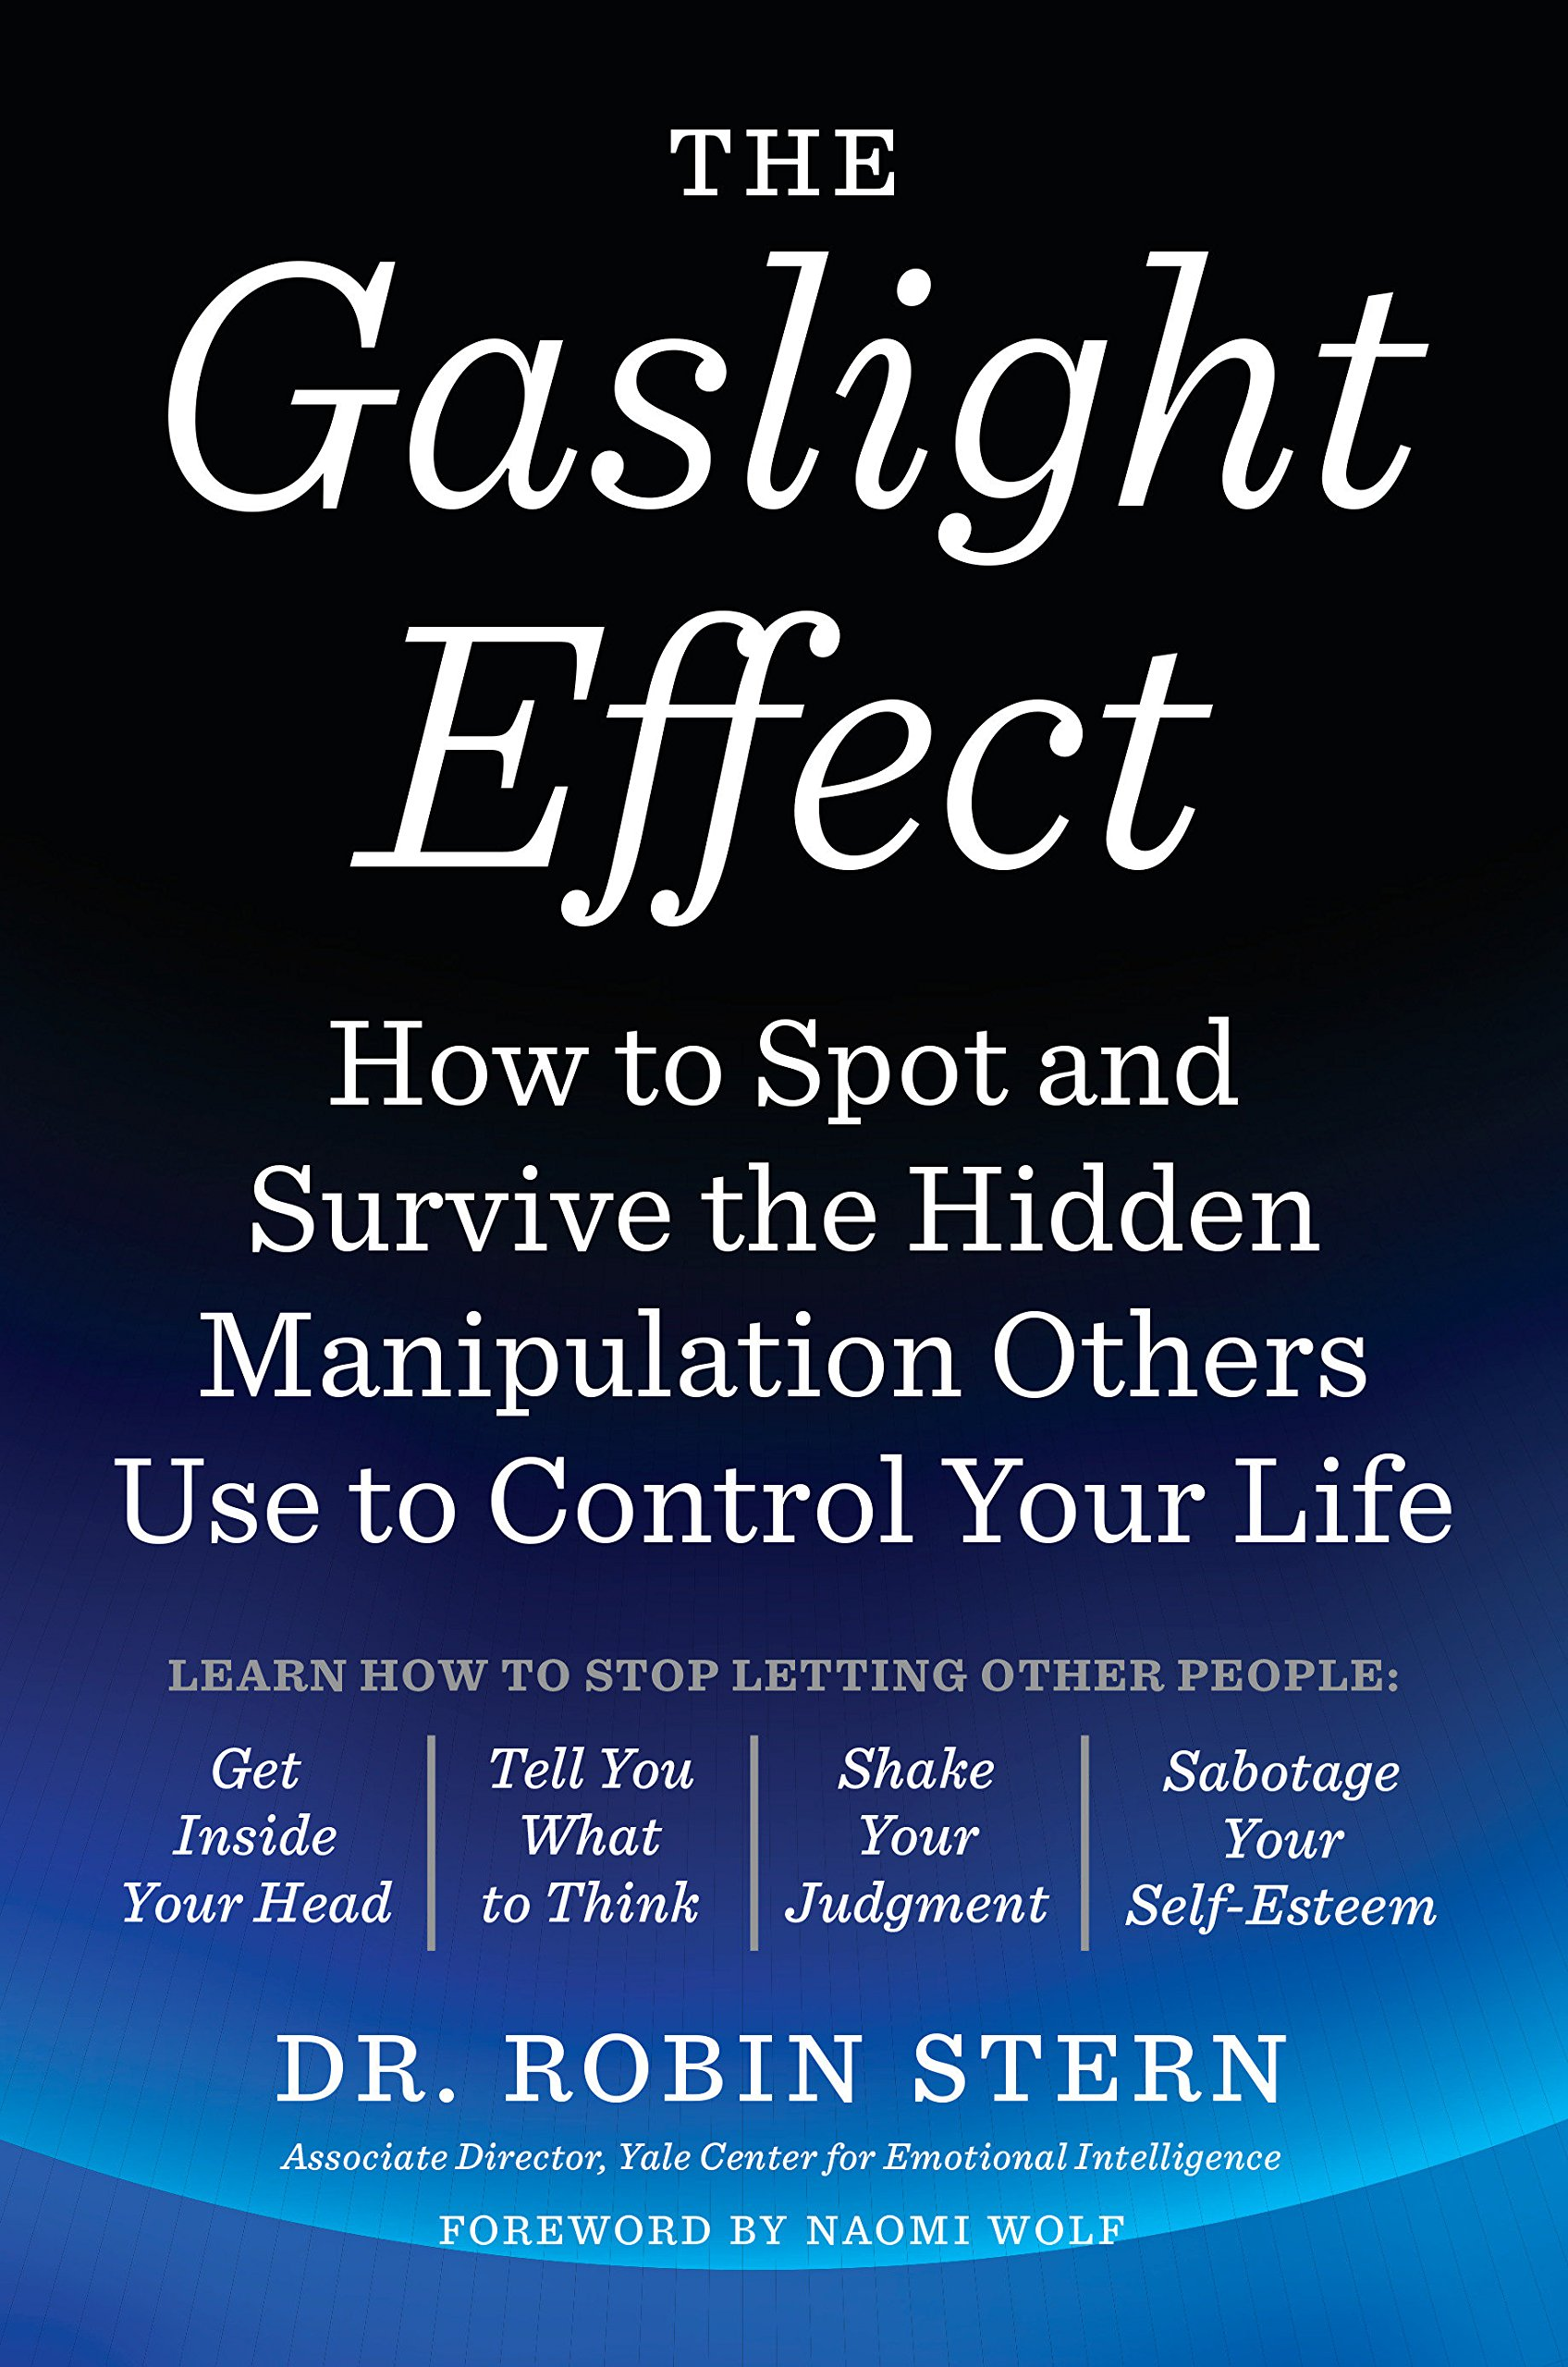 Amazon com: The Gaslight Effect: How to Spot and Survive the